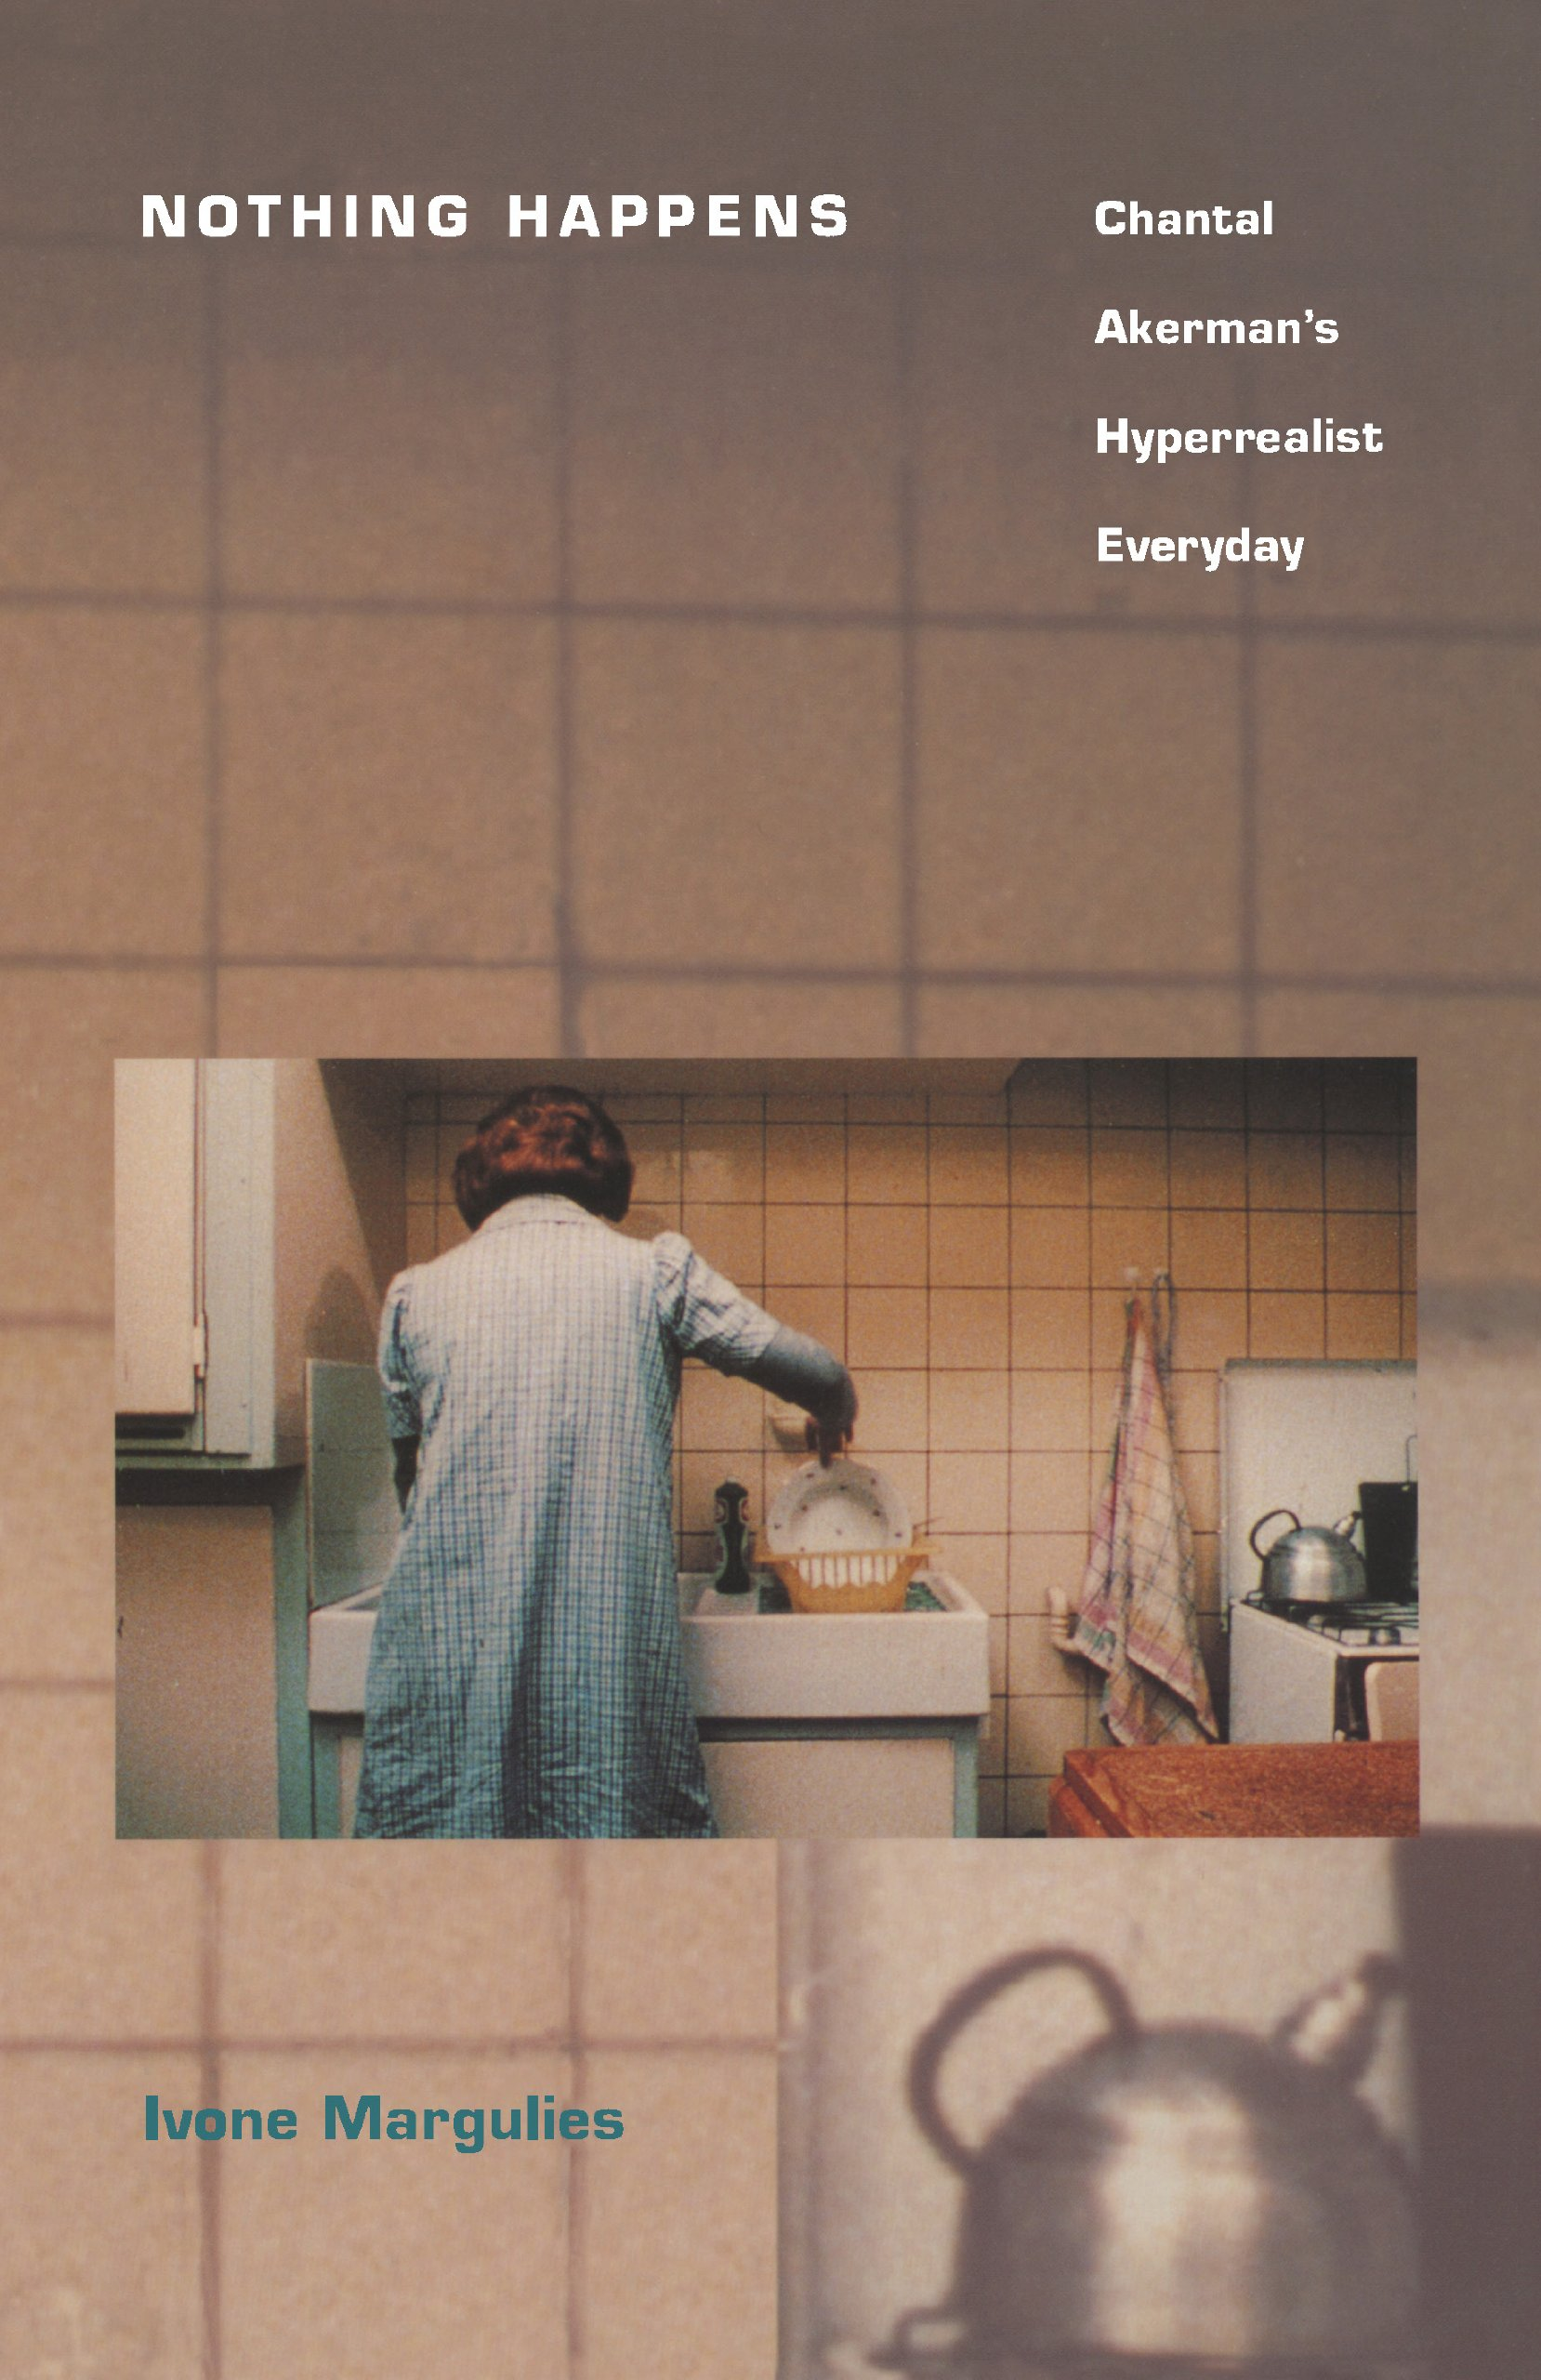 Nothing Happens: Chantal Akerman's Hyperrealist Everyday by Ivone Margulies (Duke University Press, 1996).